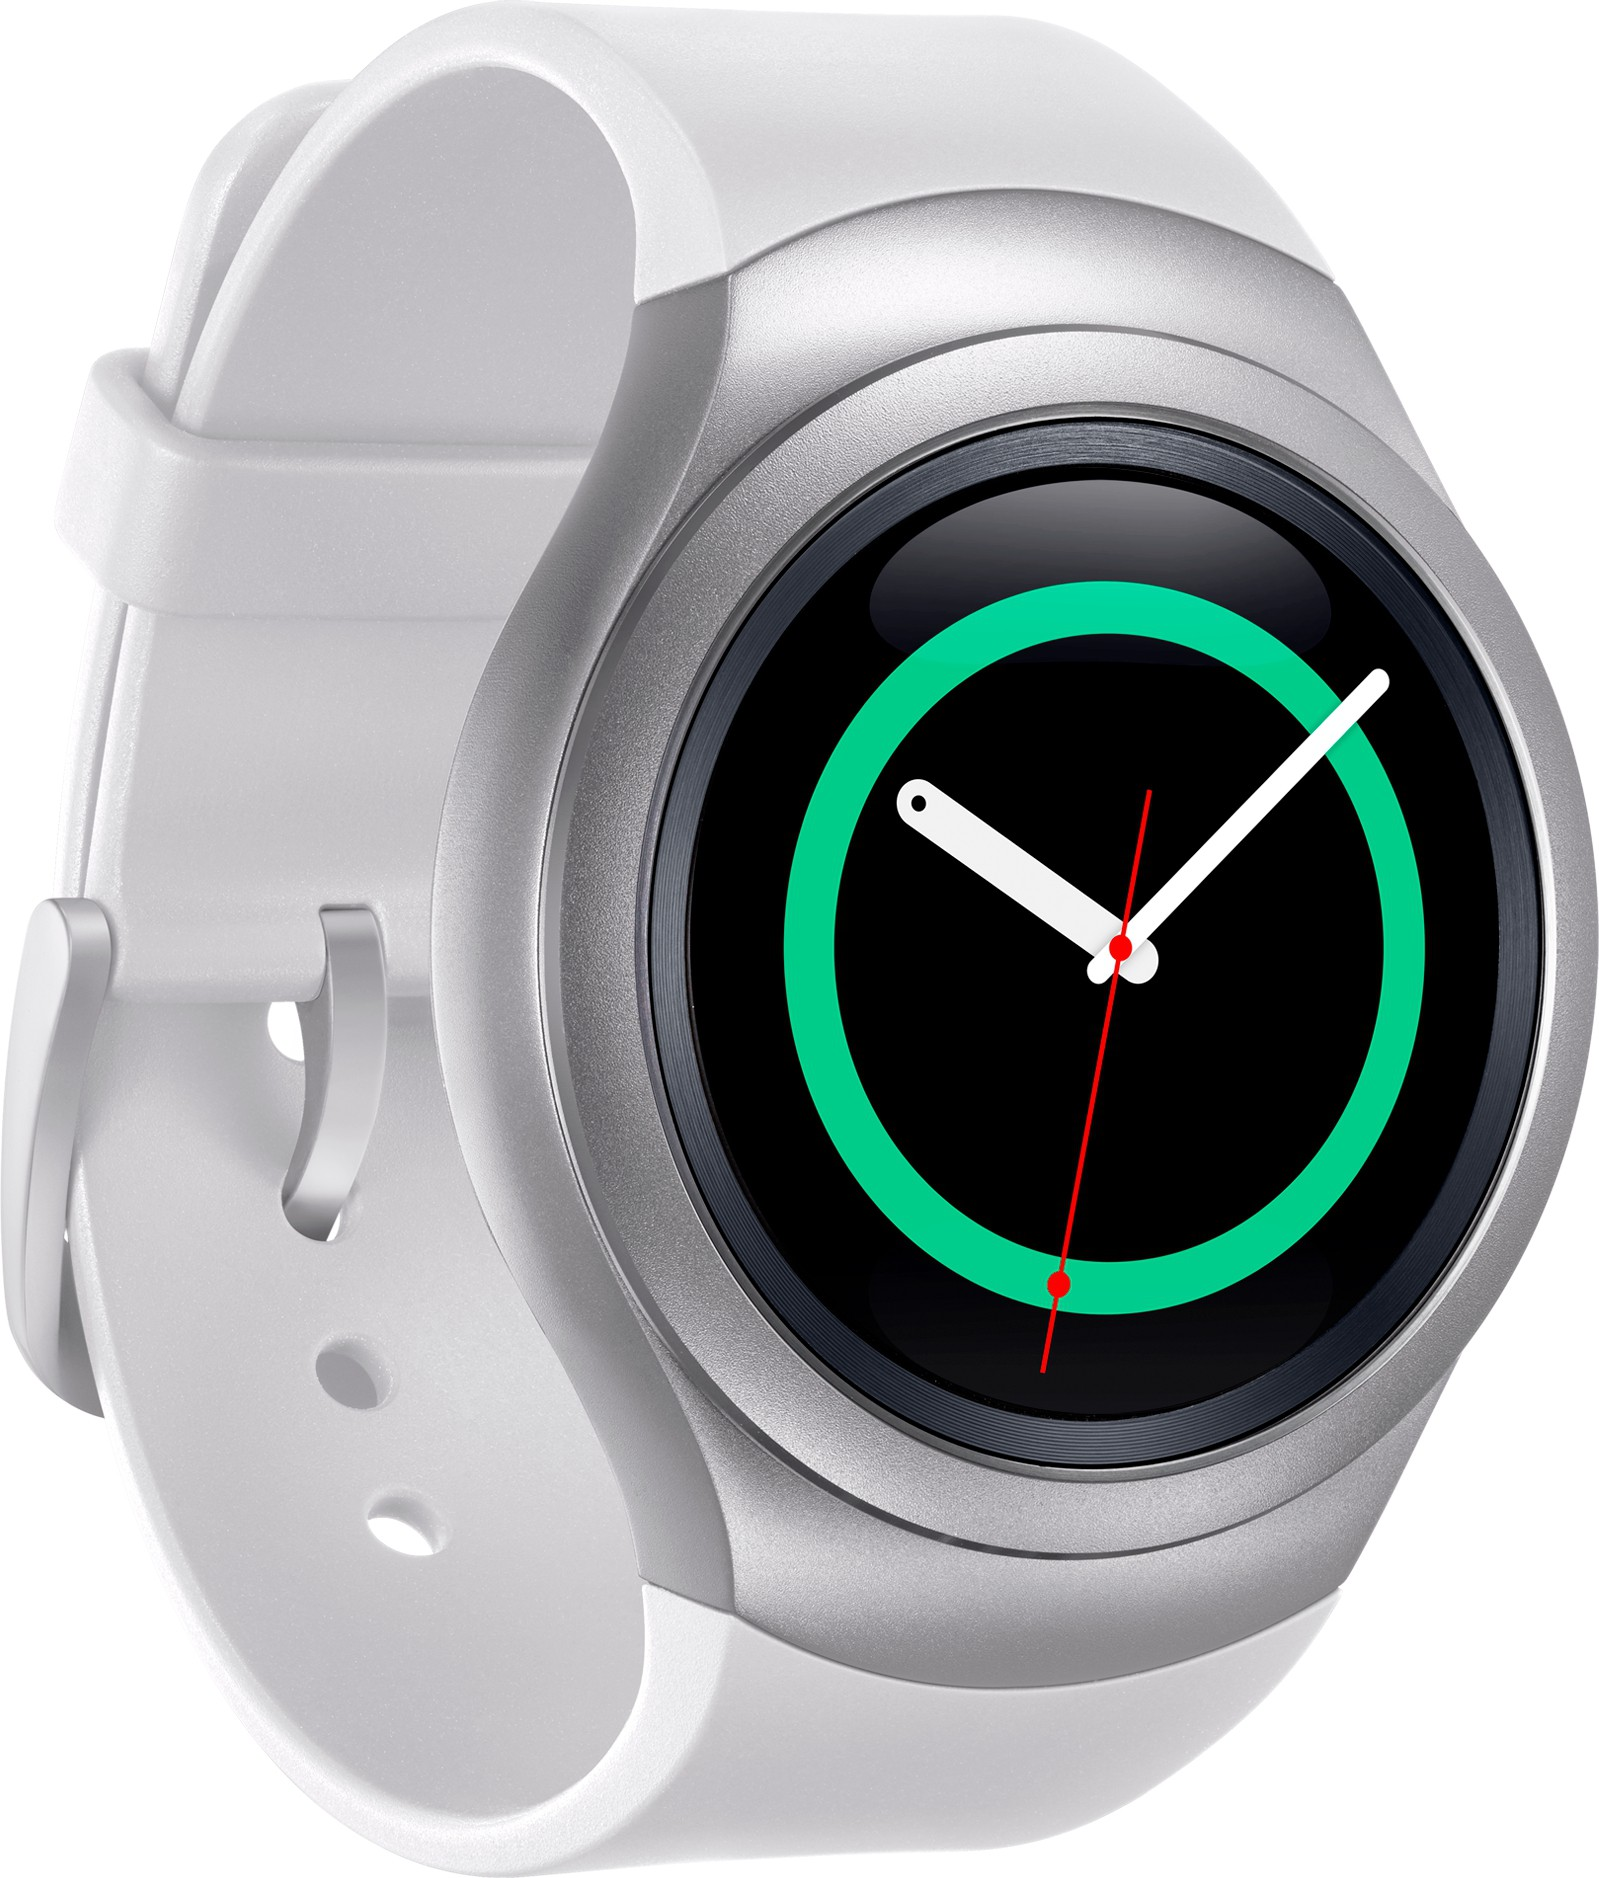 Deals - Bangalore - Samsung Gear S2 <br> Heartrate Monitor<br> Category - wearable_smart_devices<br> Business - Flipkart.com